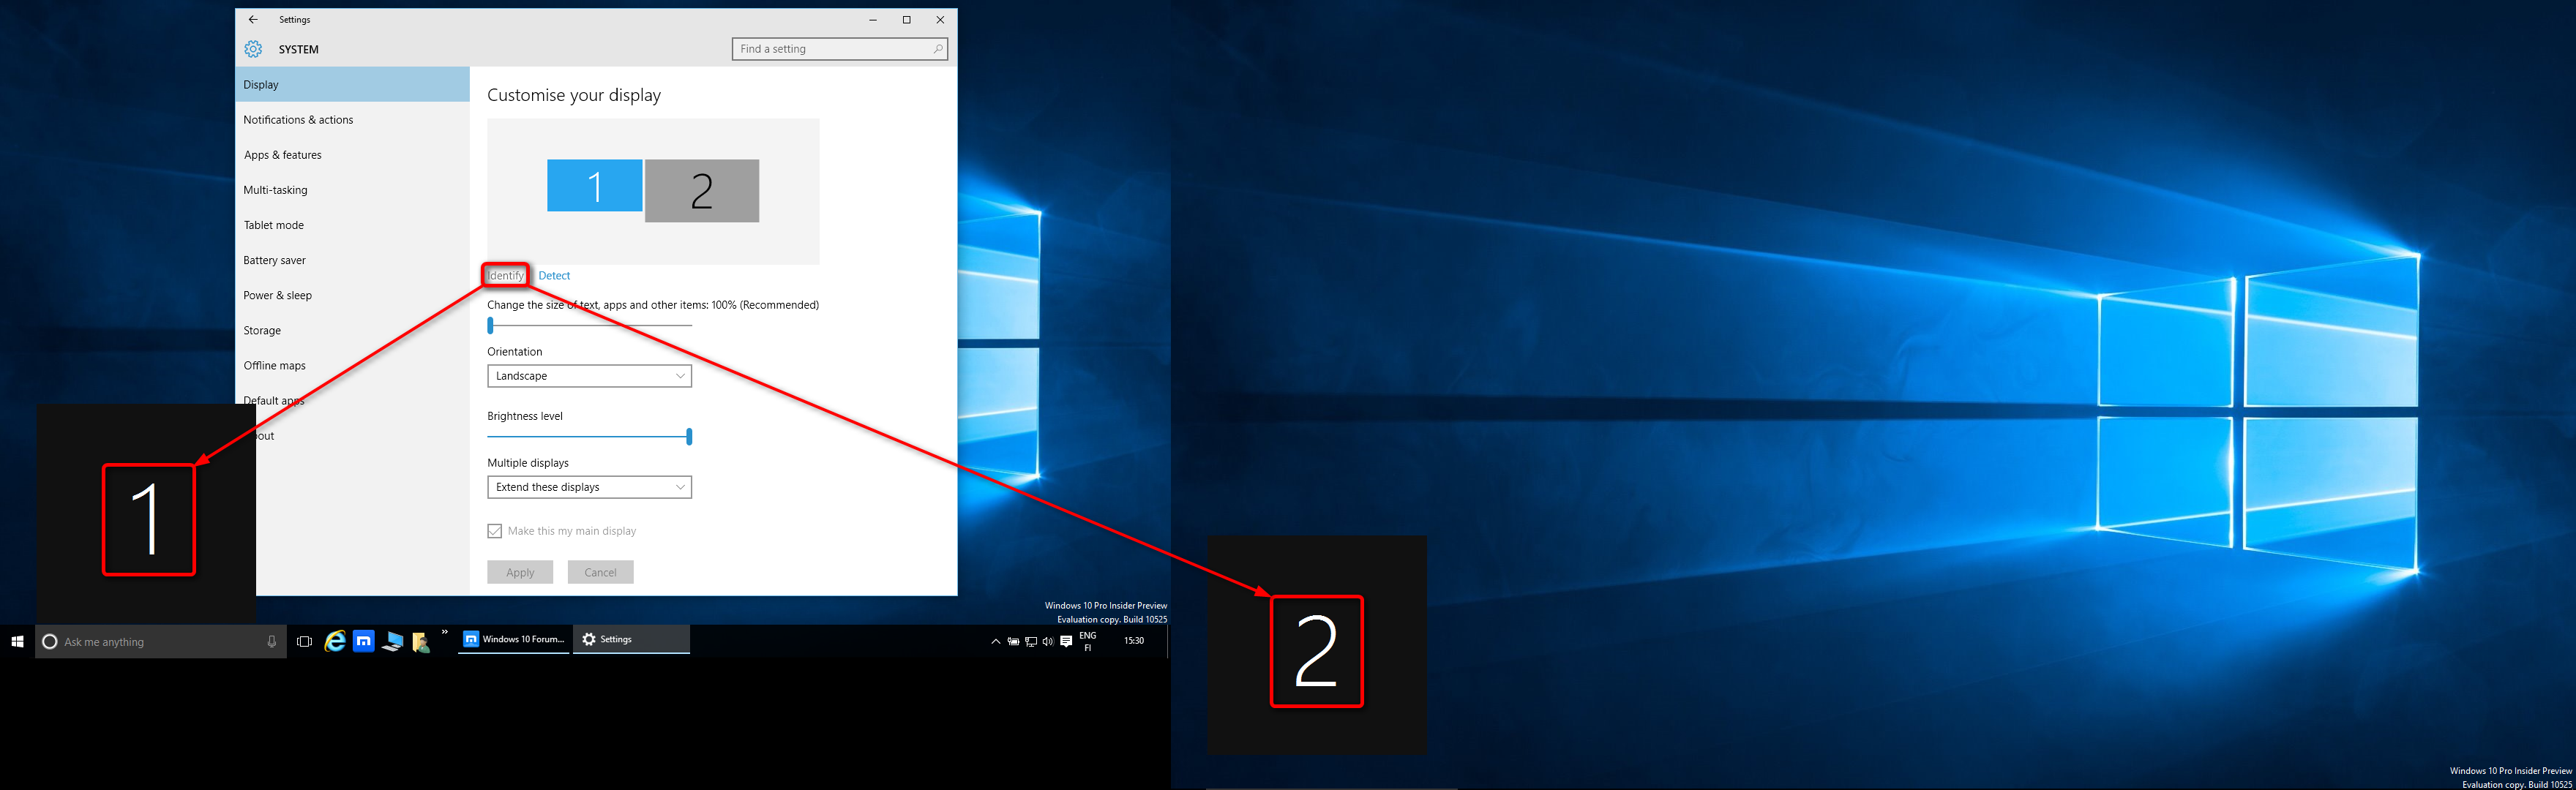 Multiple Displays - Change Settings and Layout in Windows 10